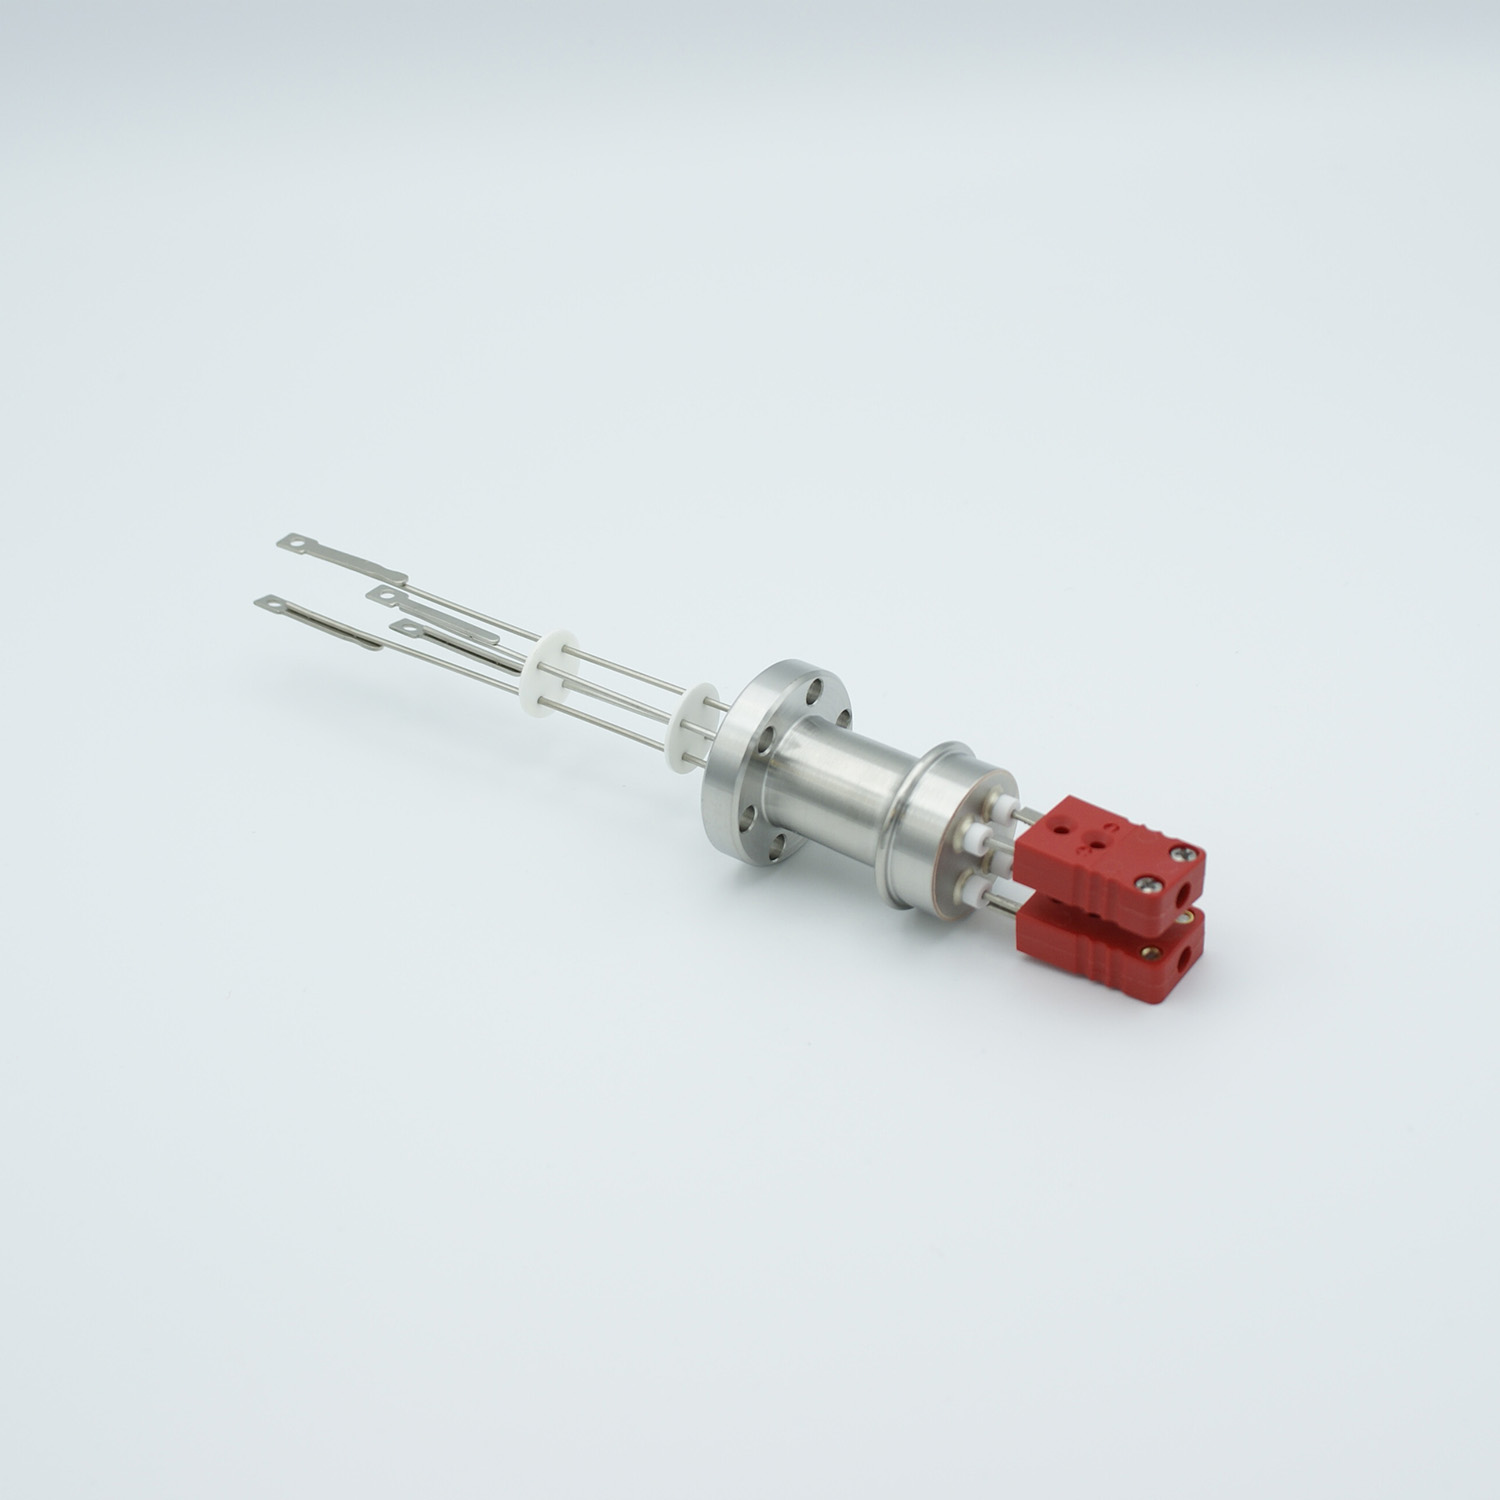 2 pair Thermocouple type-C feedthrough with both side connectors included, DN19CF flange